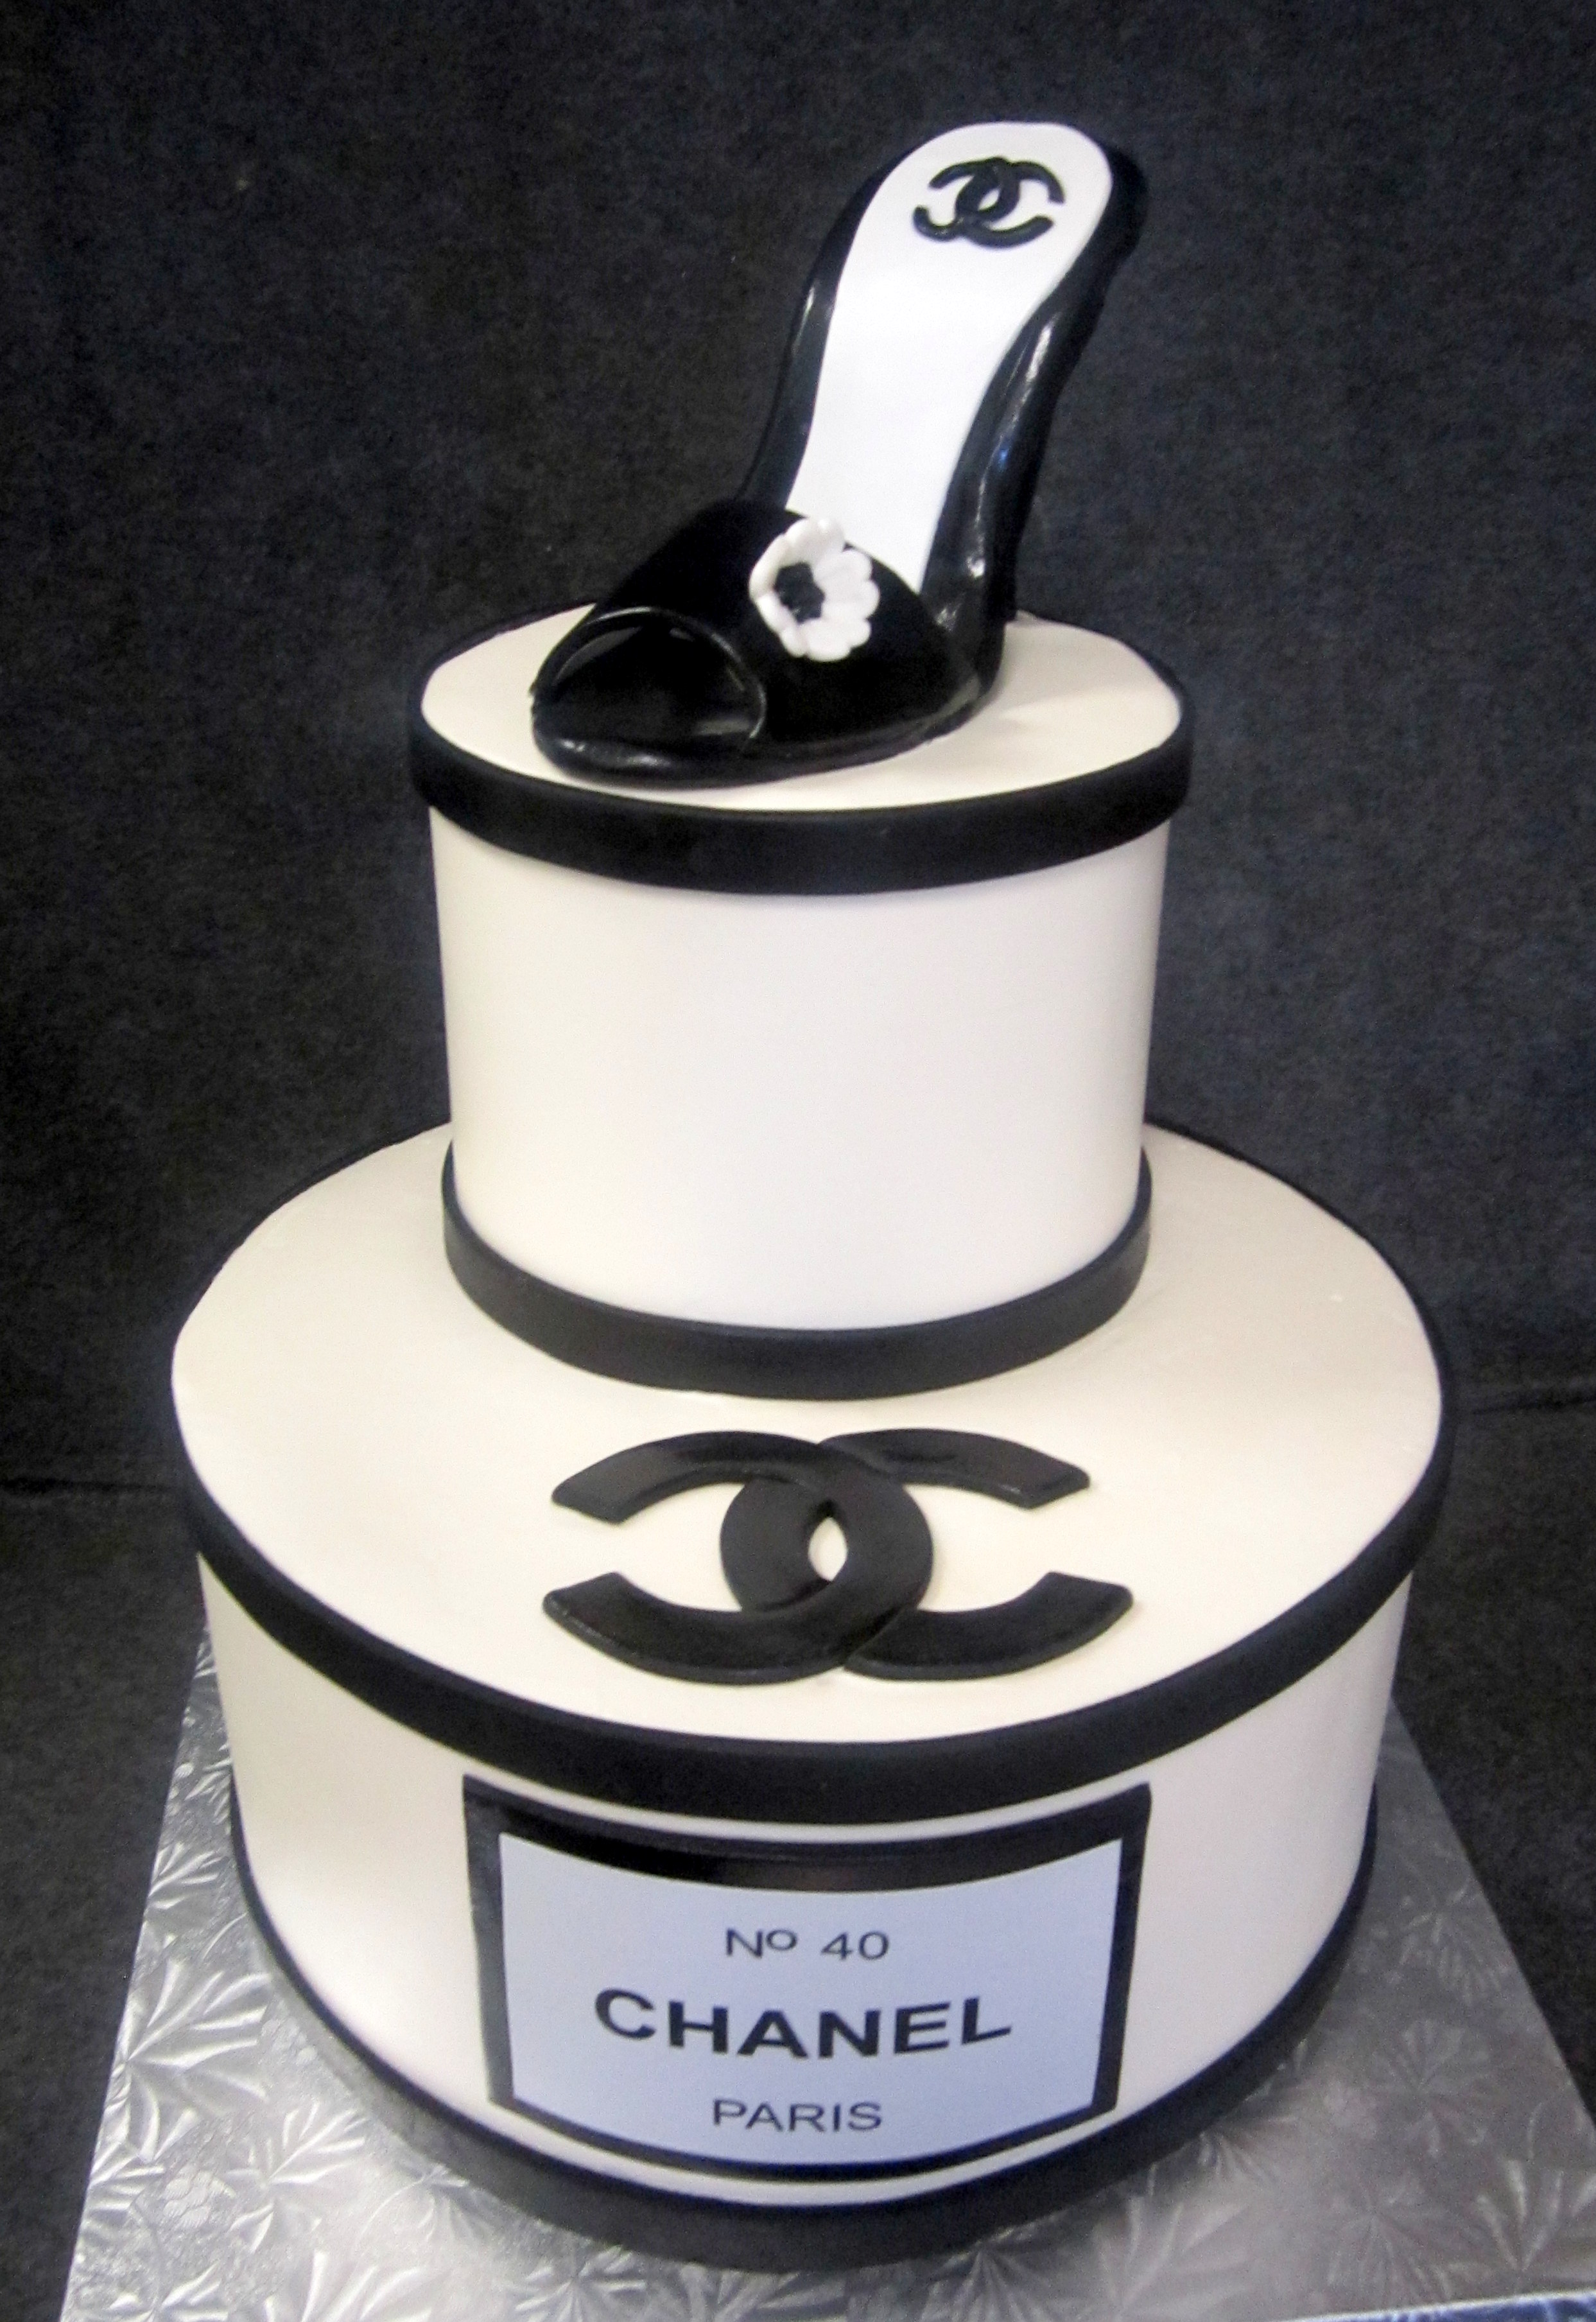 chanel black and white cake with heel.jpg